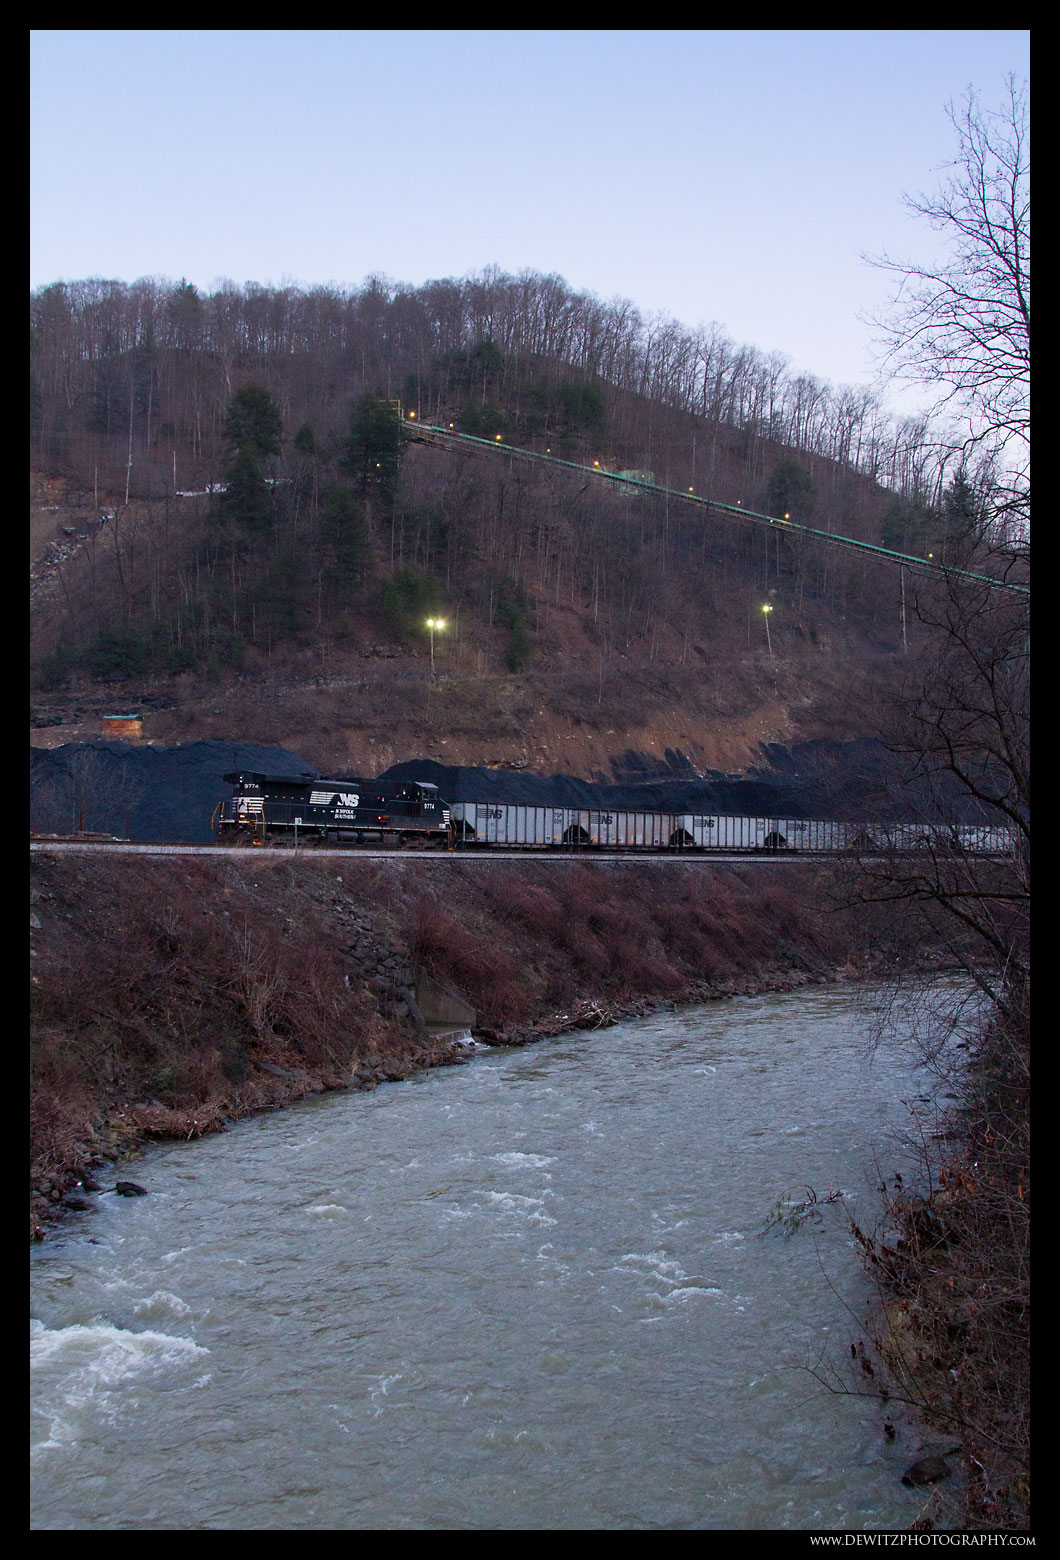 Moving Coal Cars to be Loaded at Teco Mine